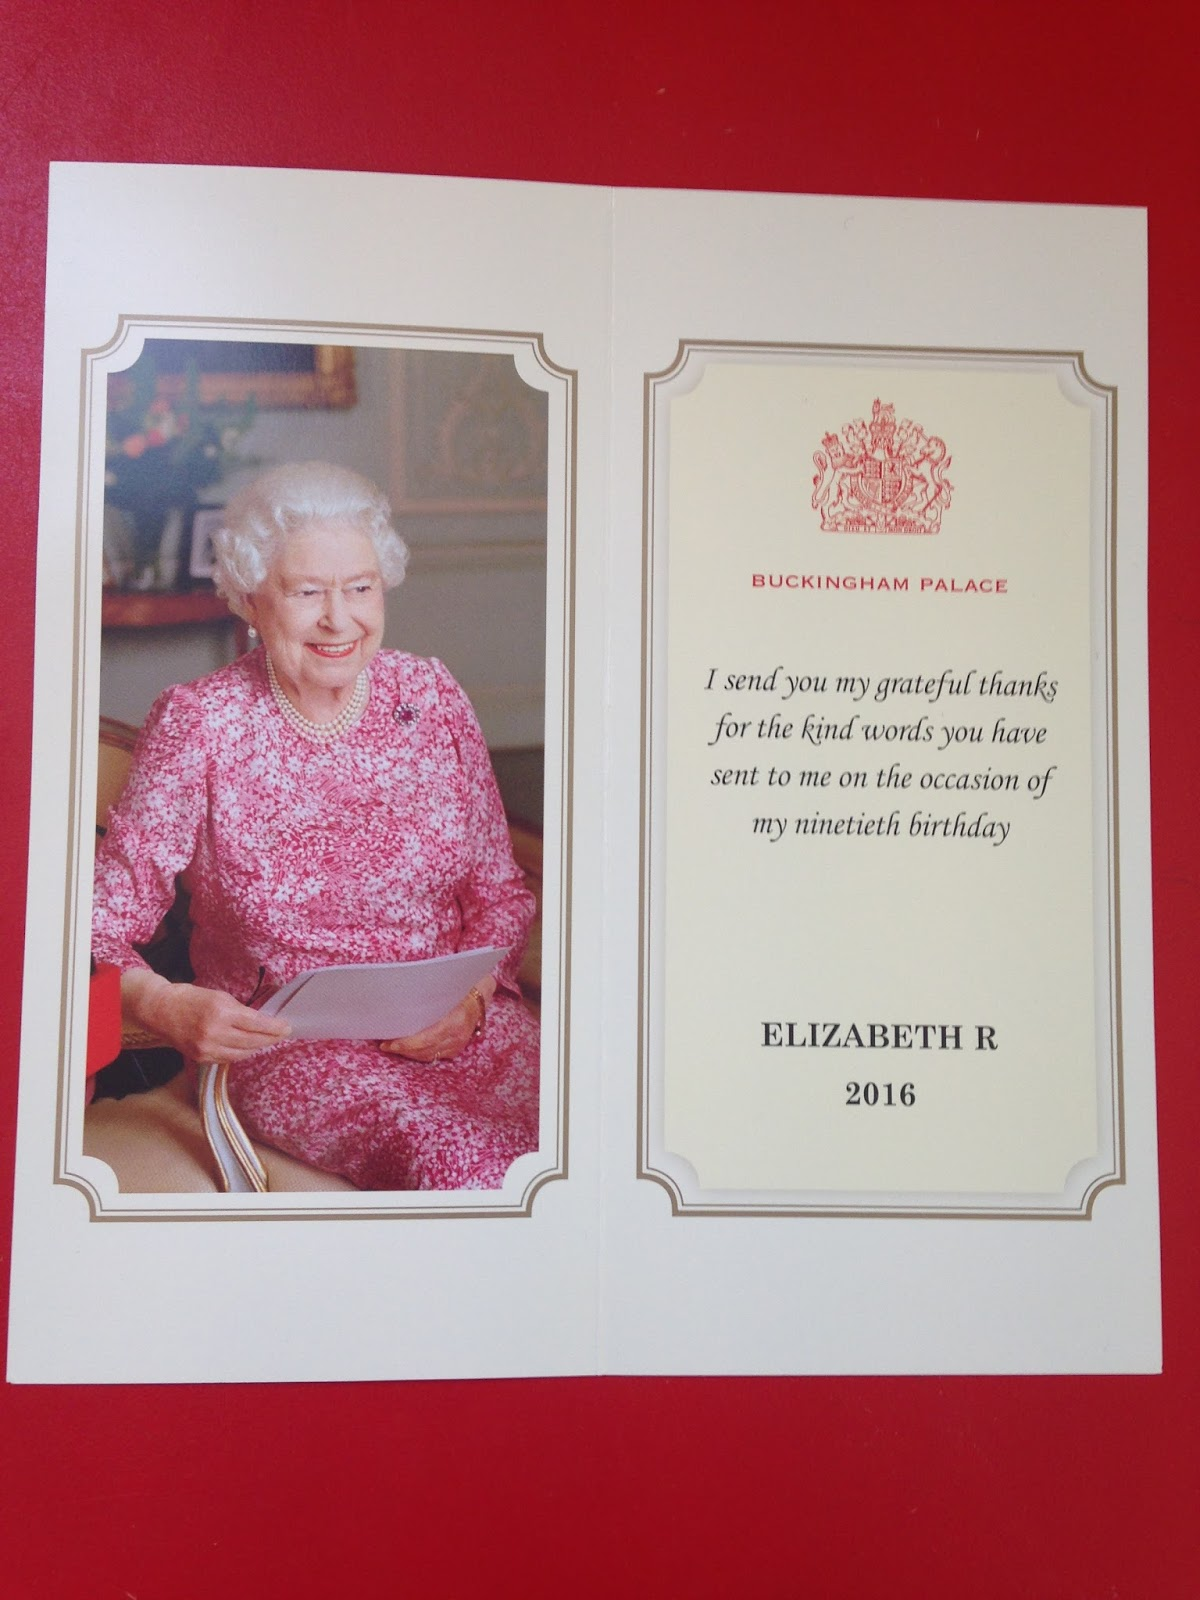 St Georges Preschool Blog The Queens Th Birthday - Childrens birthday cards for the queen